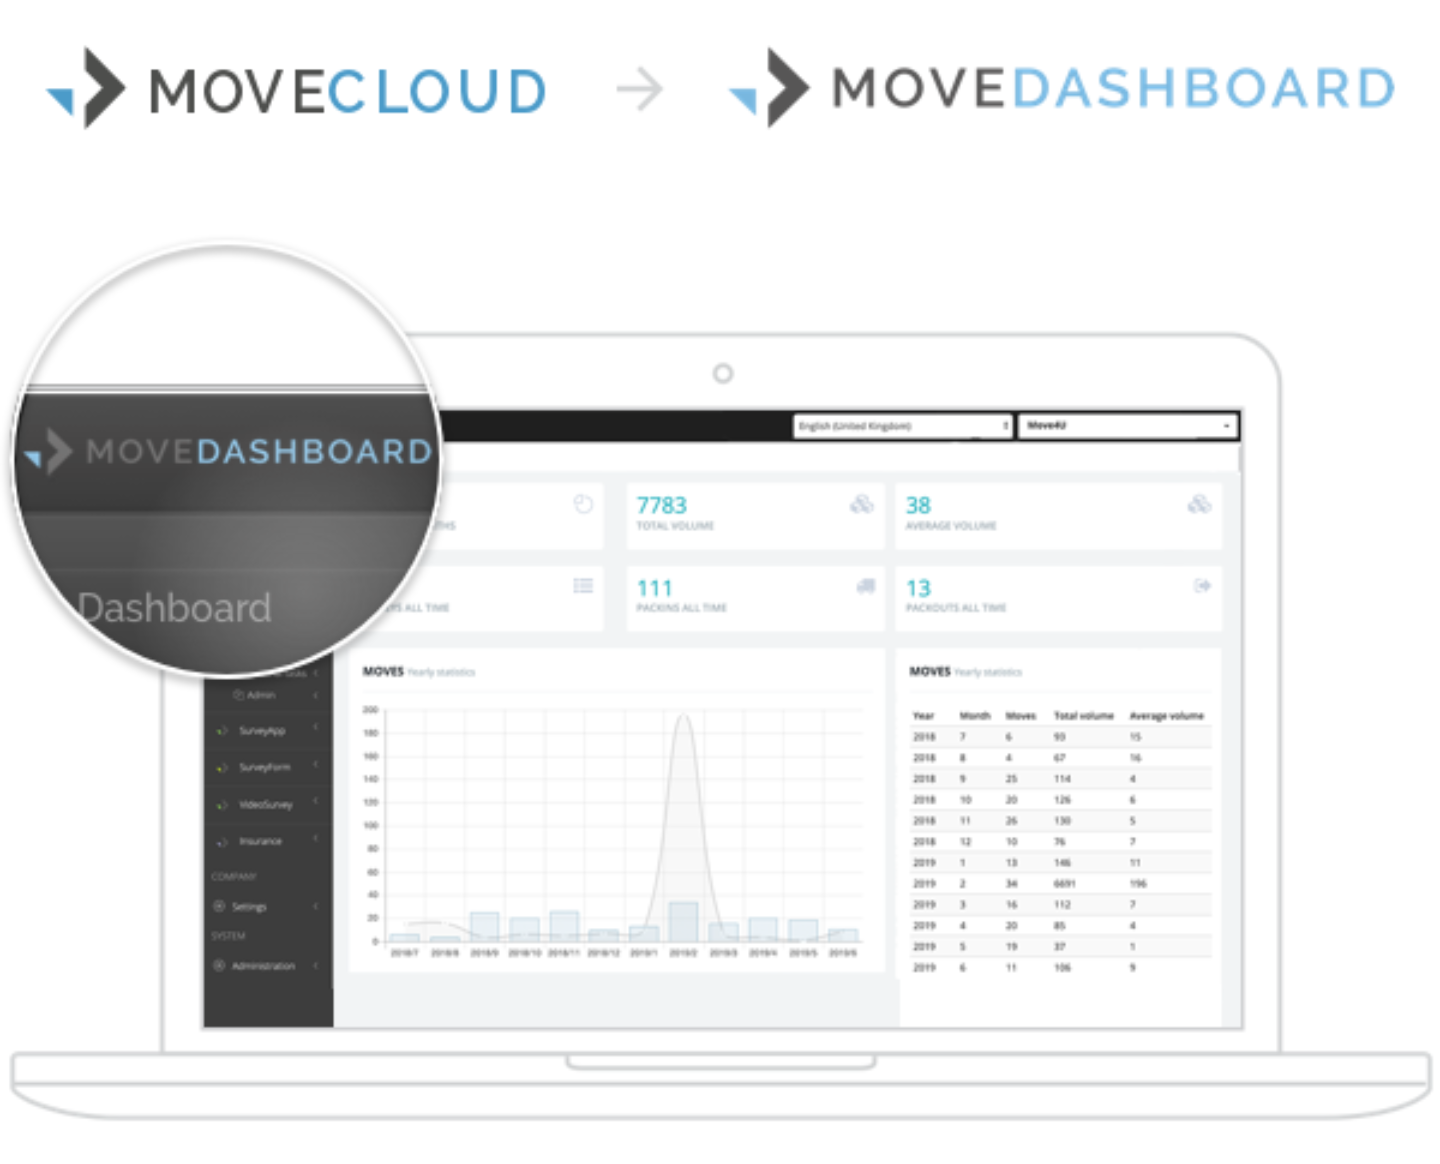 Movecloud movedashboard